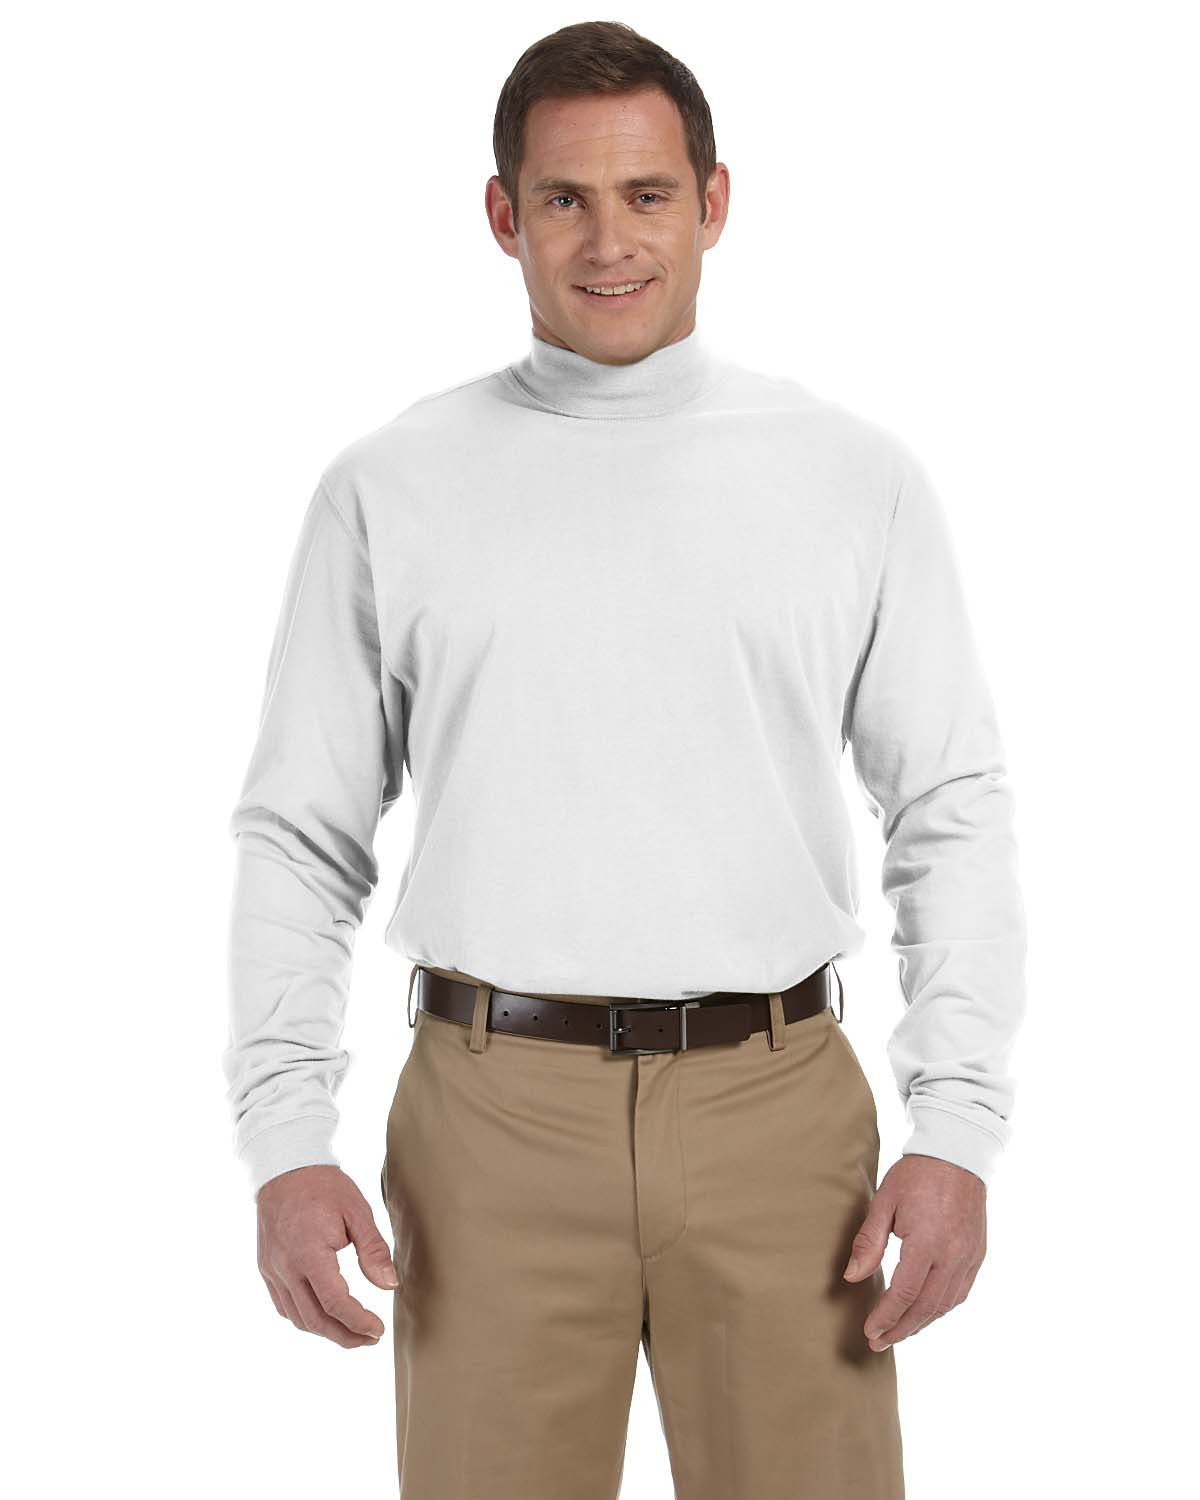 Mock Turtleneck by Devon and Jones